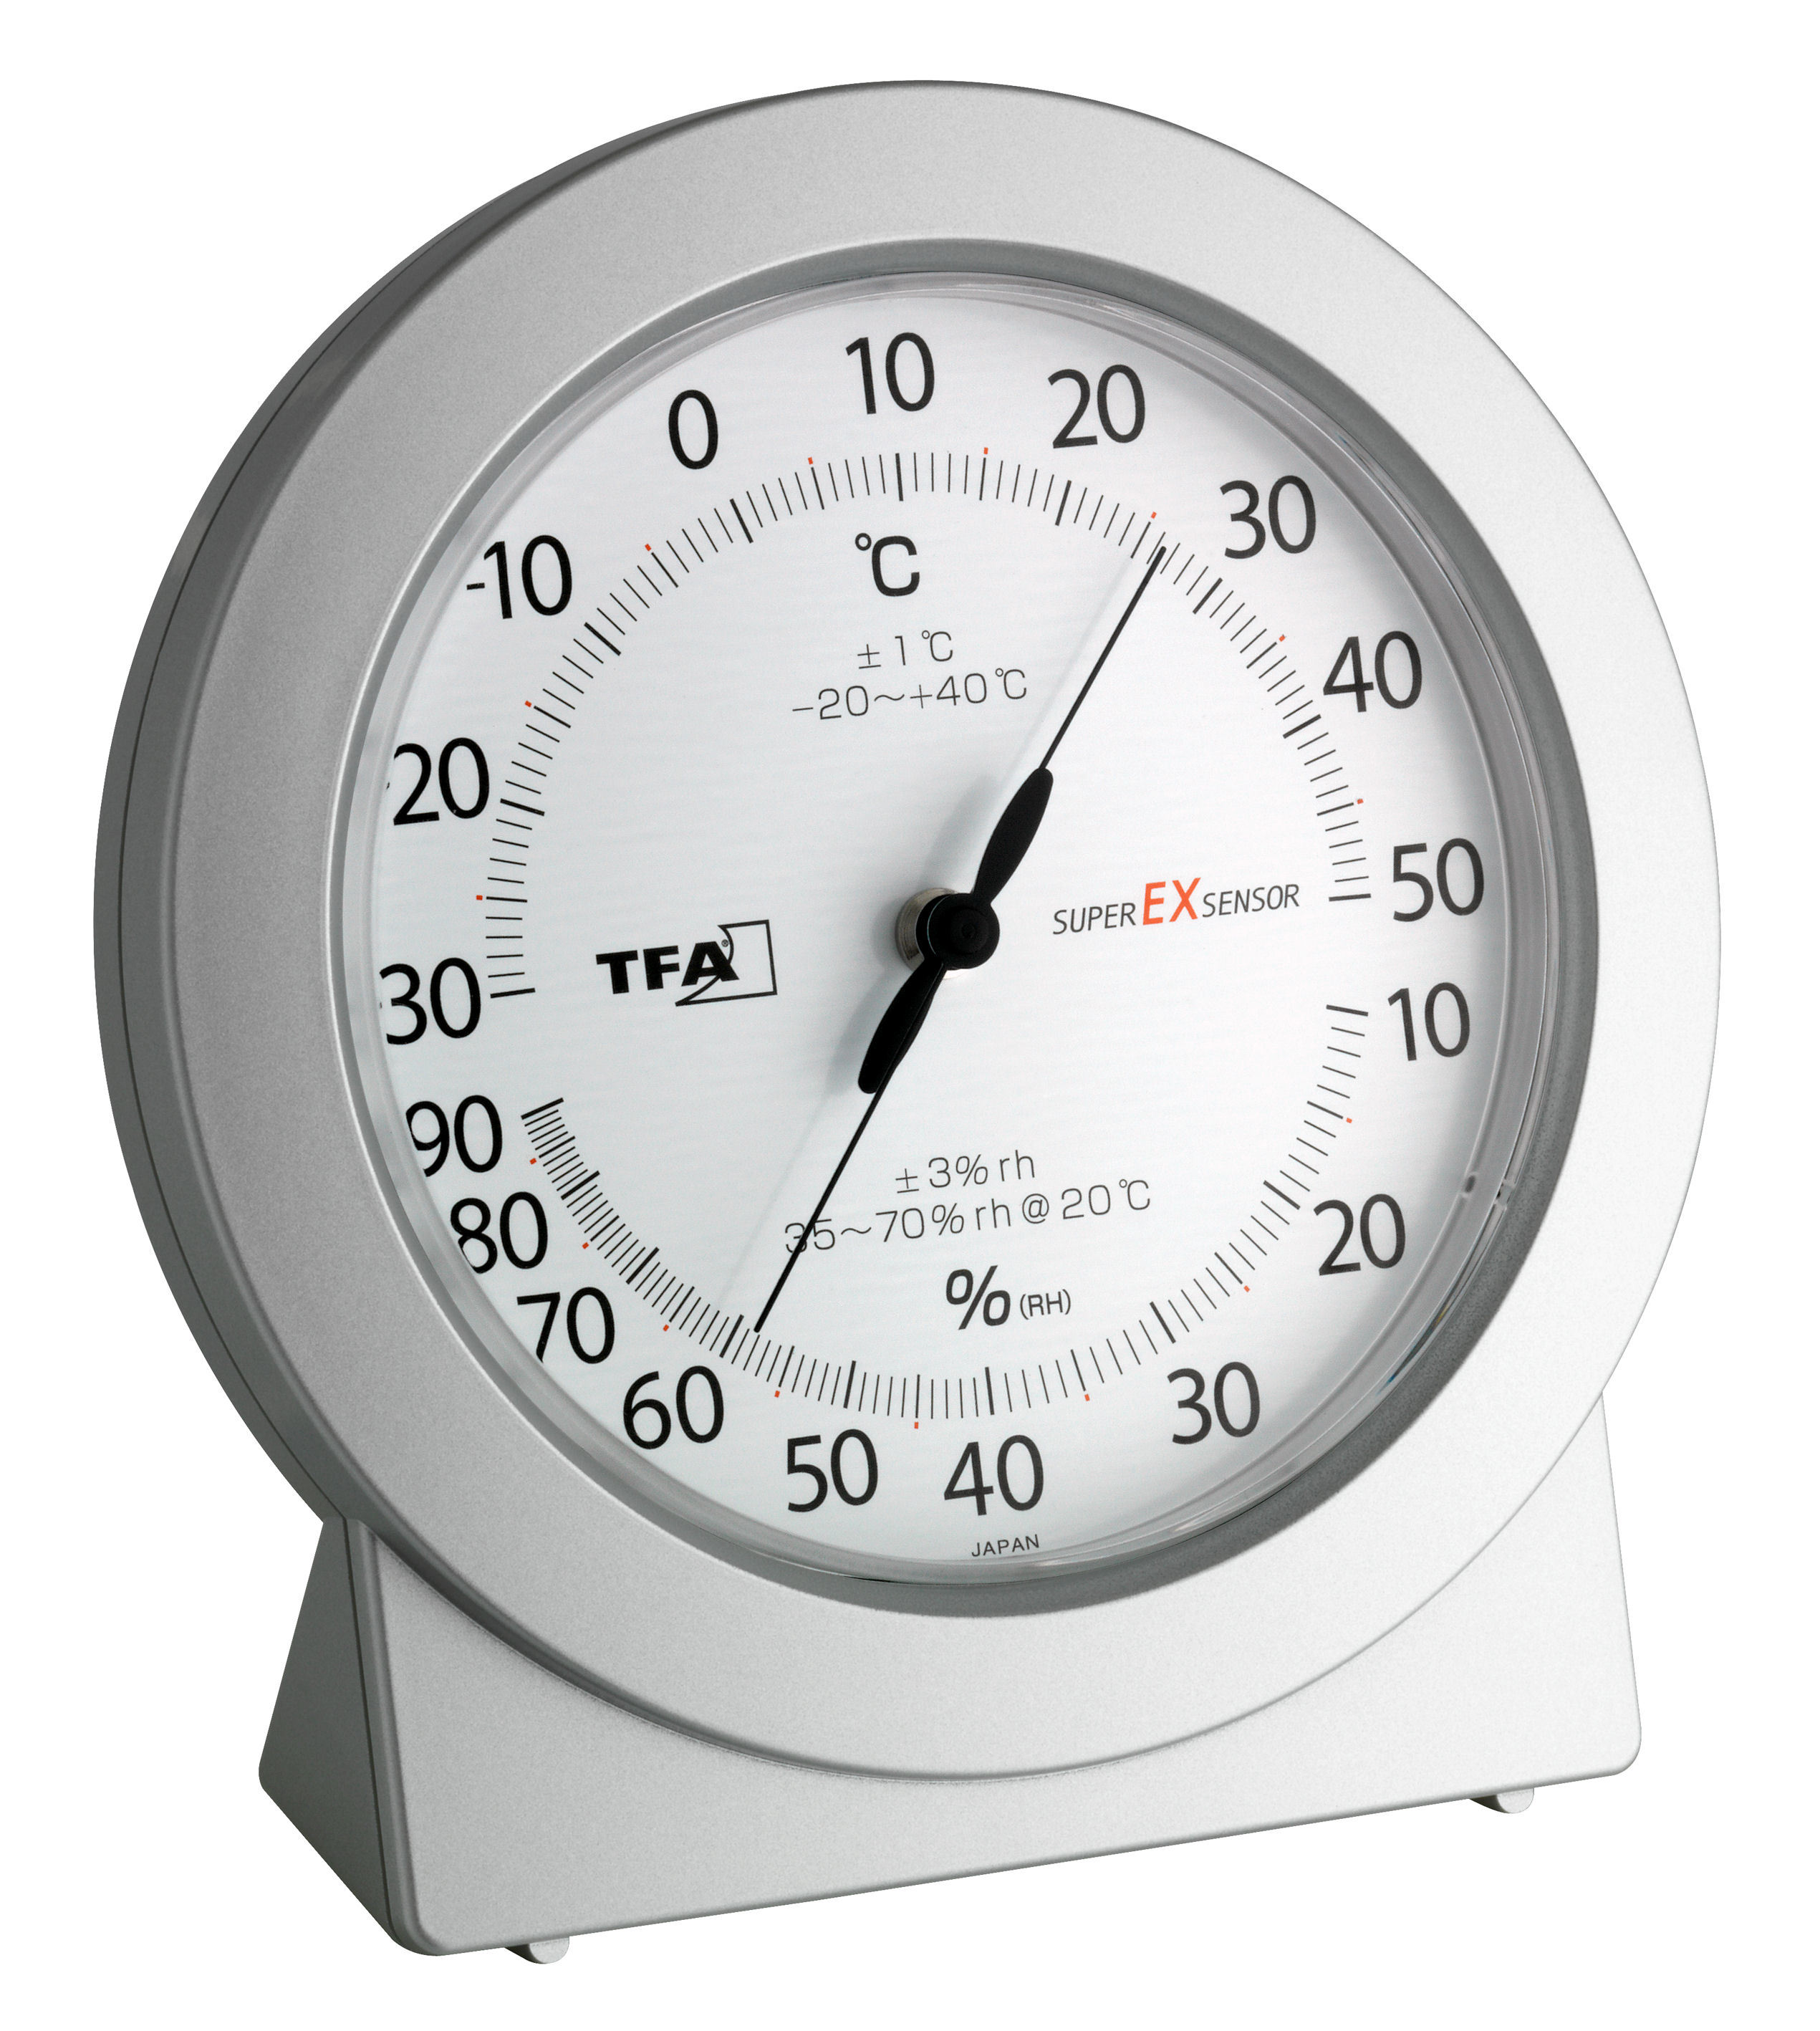 analogue precision thermo hygrometer tfa dostmann. Black Bedroom Furniture Sets. Home Design Ideas